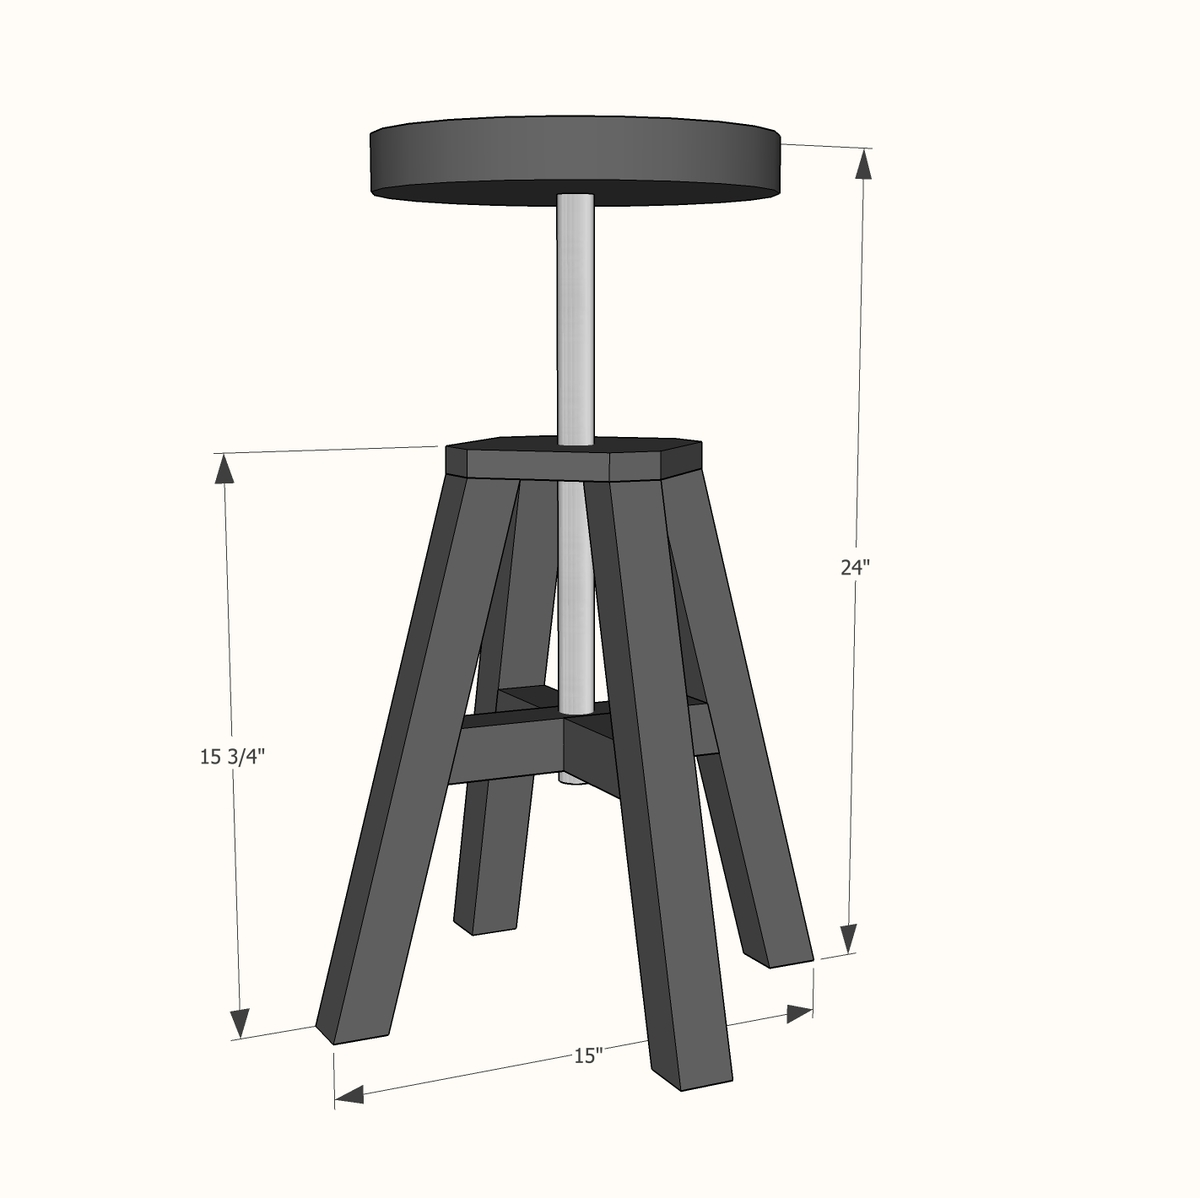 Ana White Adjustable Height Wood And Metal Stool Diy